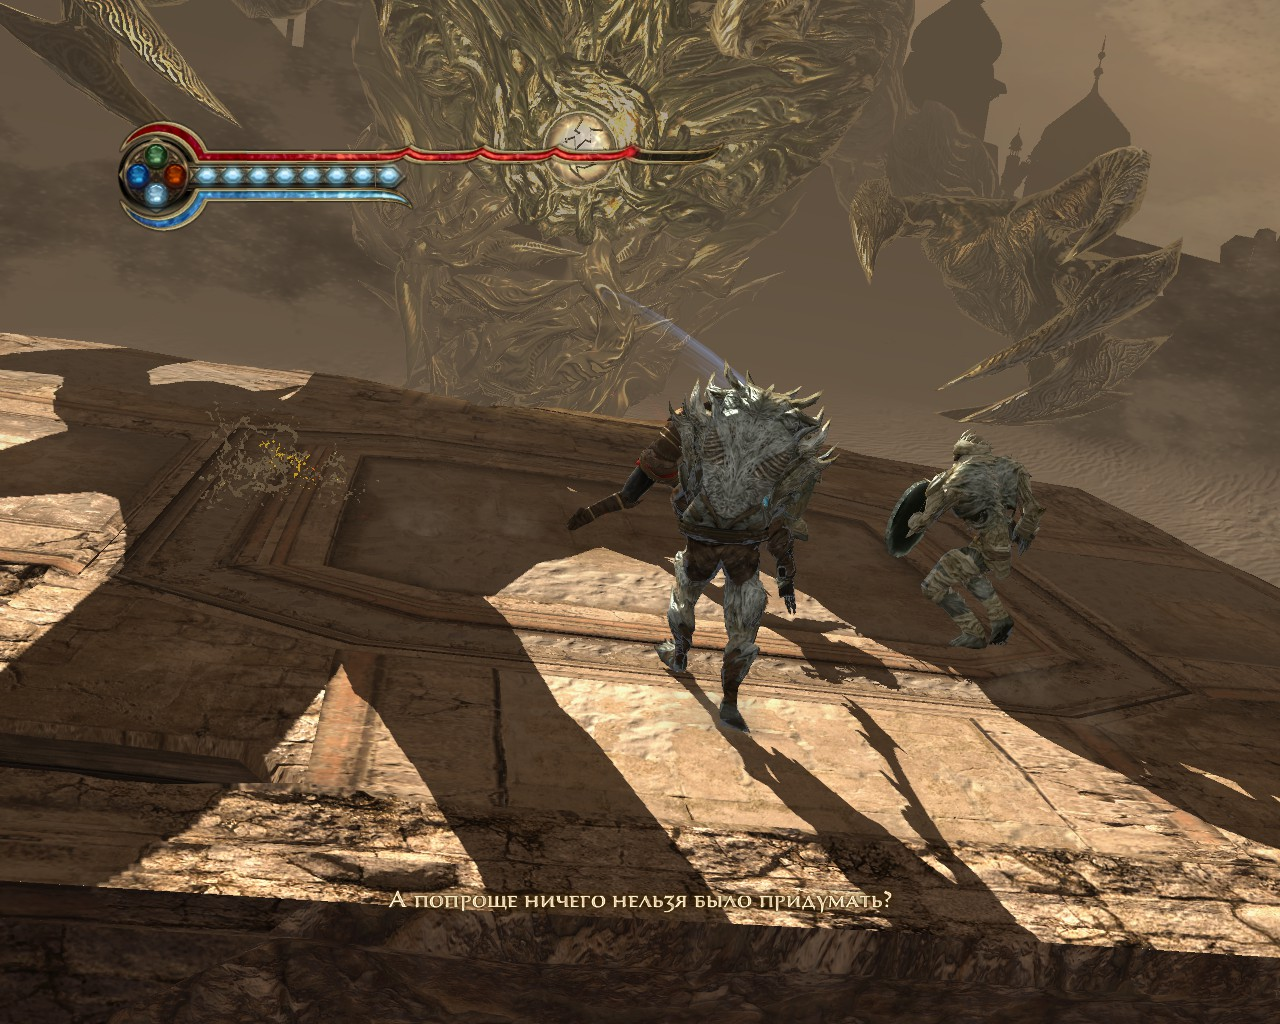 Prince of Persia 2014-06-04 20-25-16-15.jpg - Prince of Persia: The Forgotten Sands